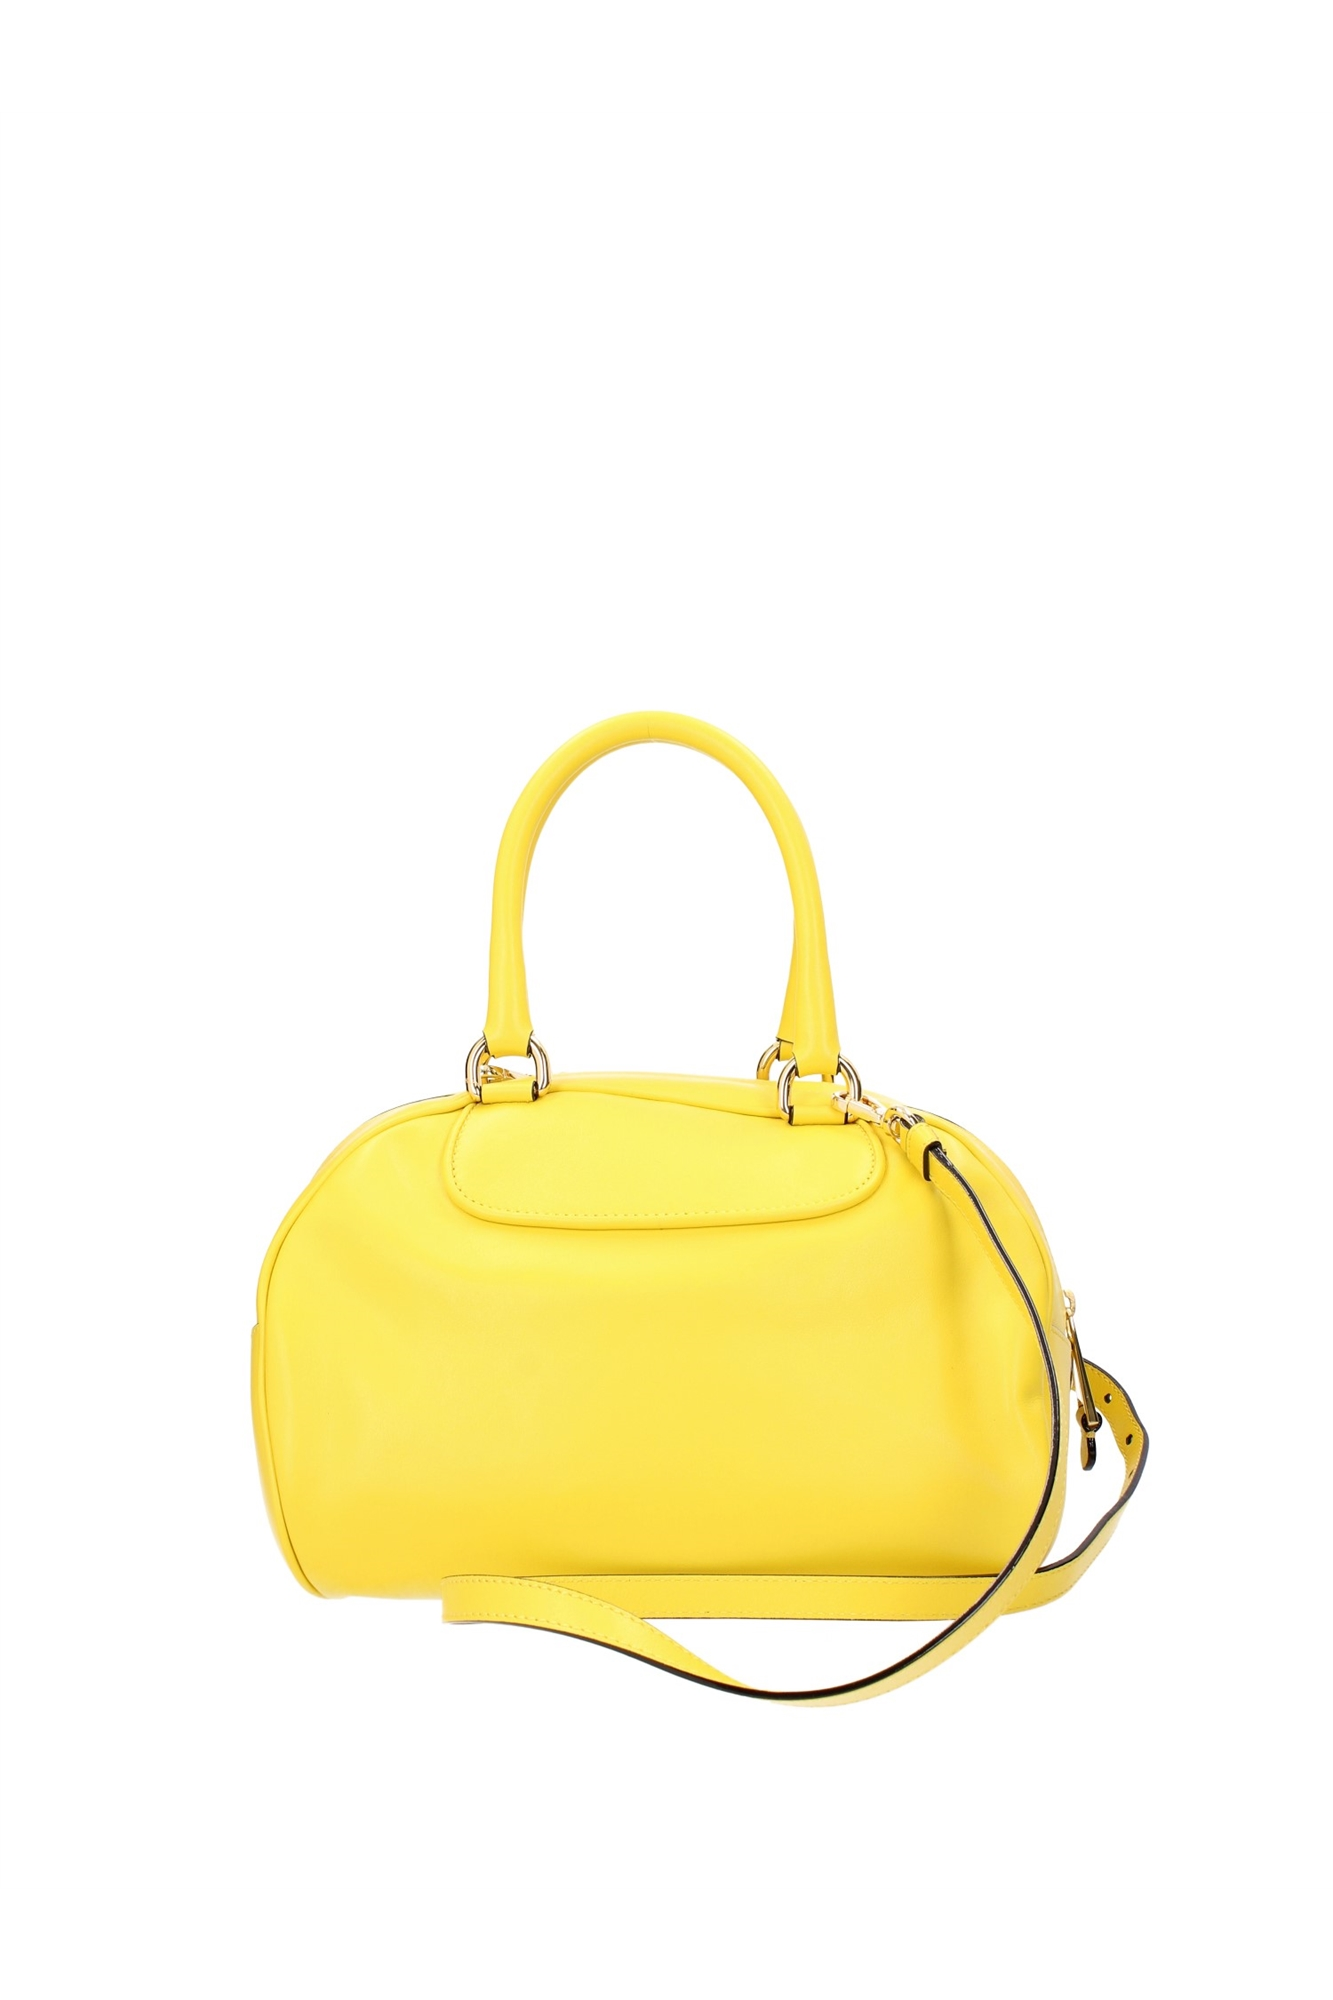 bowling bags moschino women leather yellow 2a7488800127 ebay. Black Bedroom Furniture Sets. Home Design Ideas